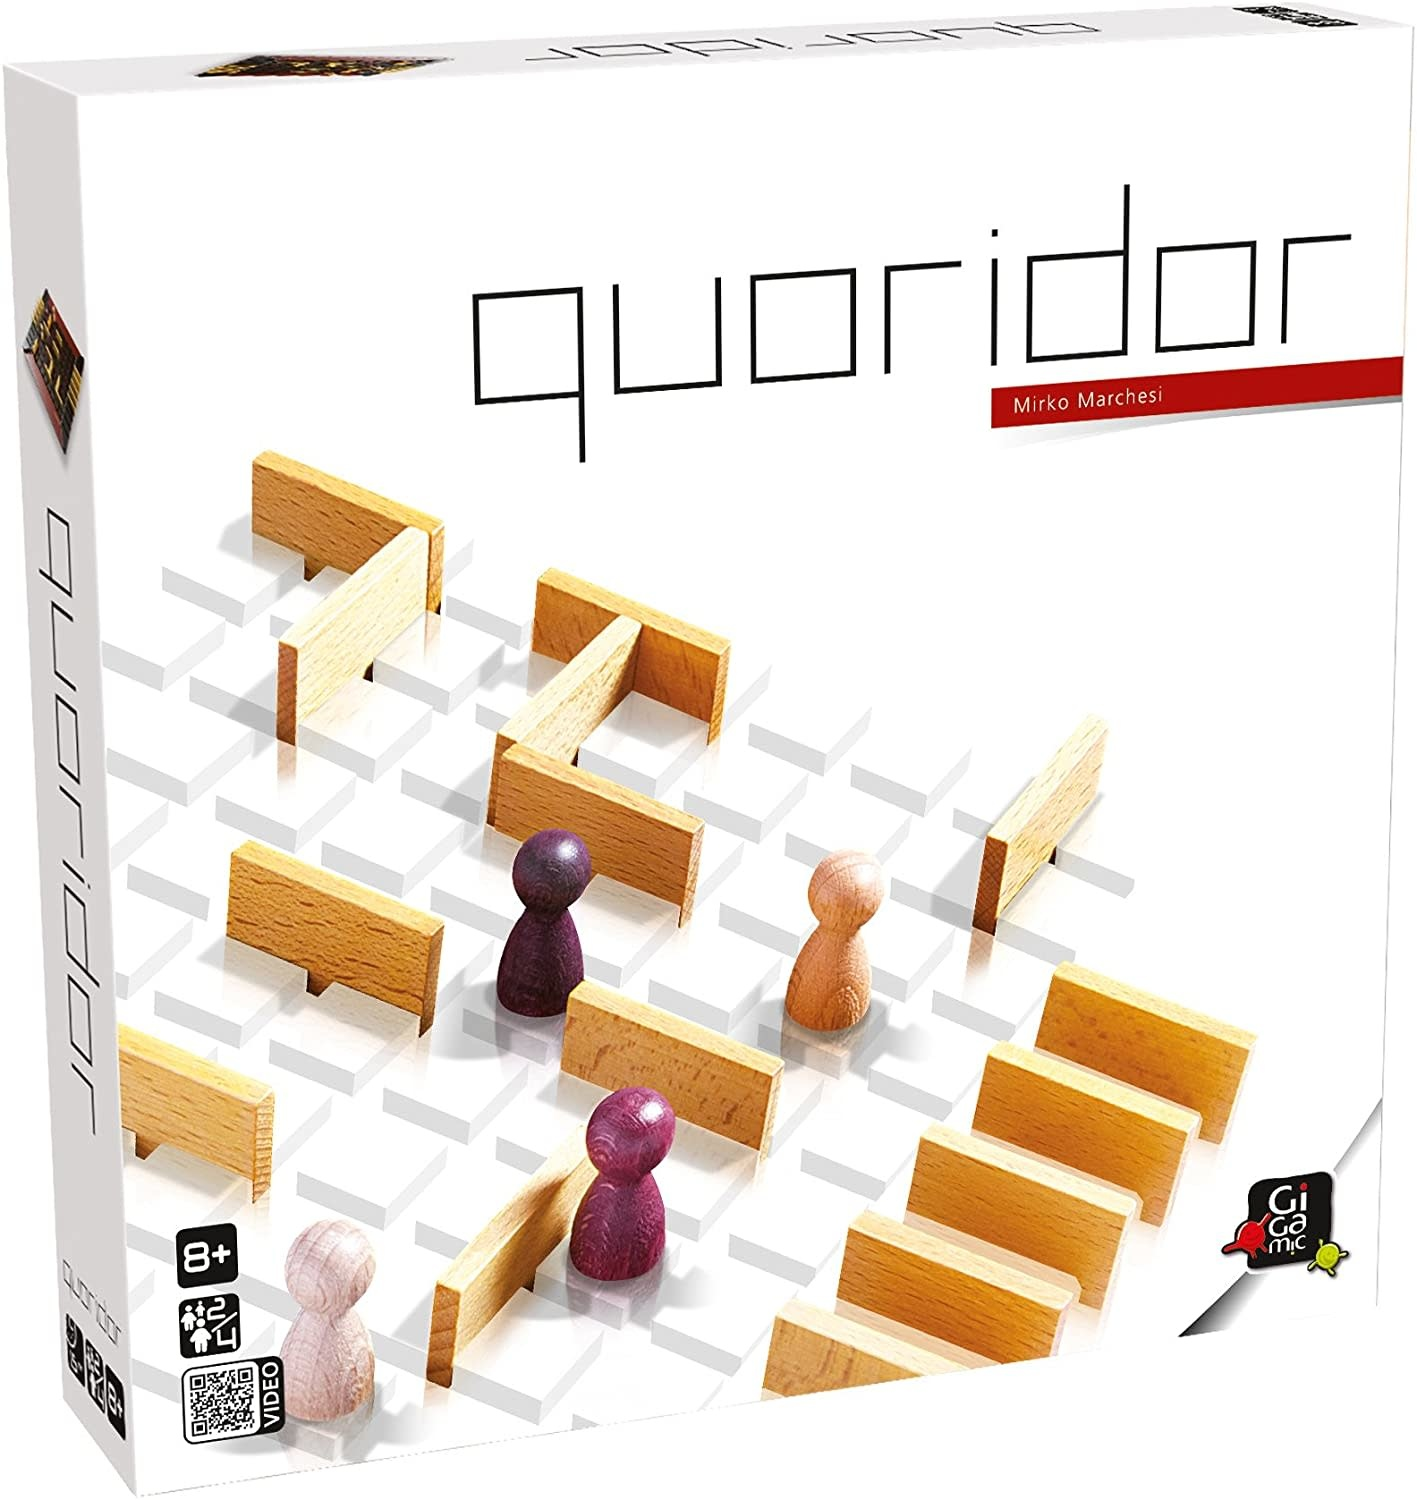 Quoridor Game by Gigamic